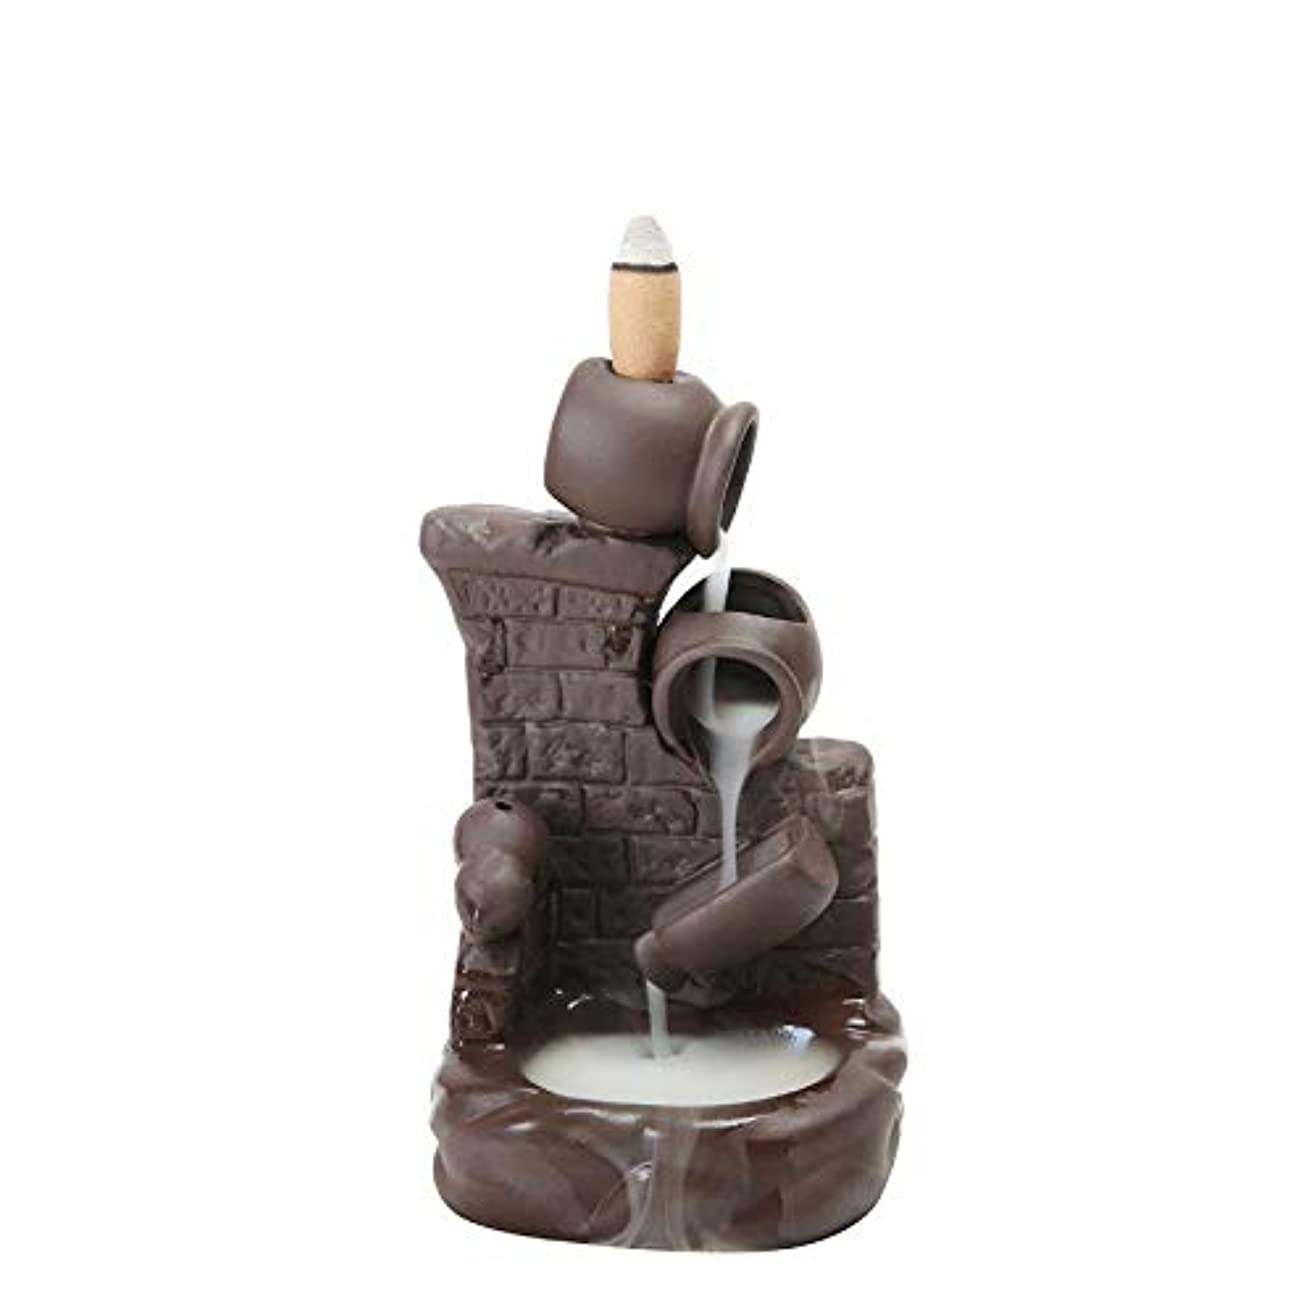 不屈回る冷淡な(Style 6) - Gift Pro Ceramic Backflow Incense Tower Burner Statue Figurine Incense Holder Incenses Not Included...